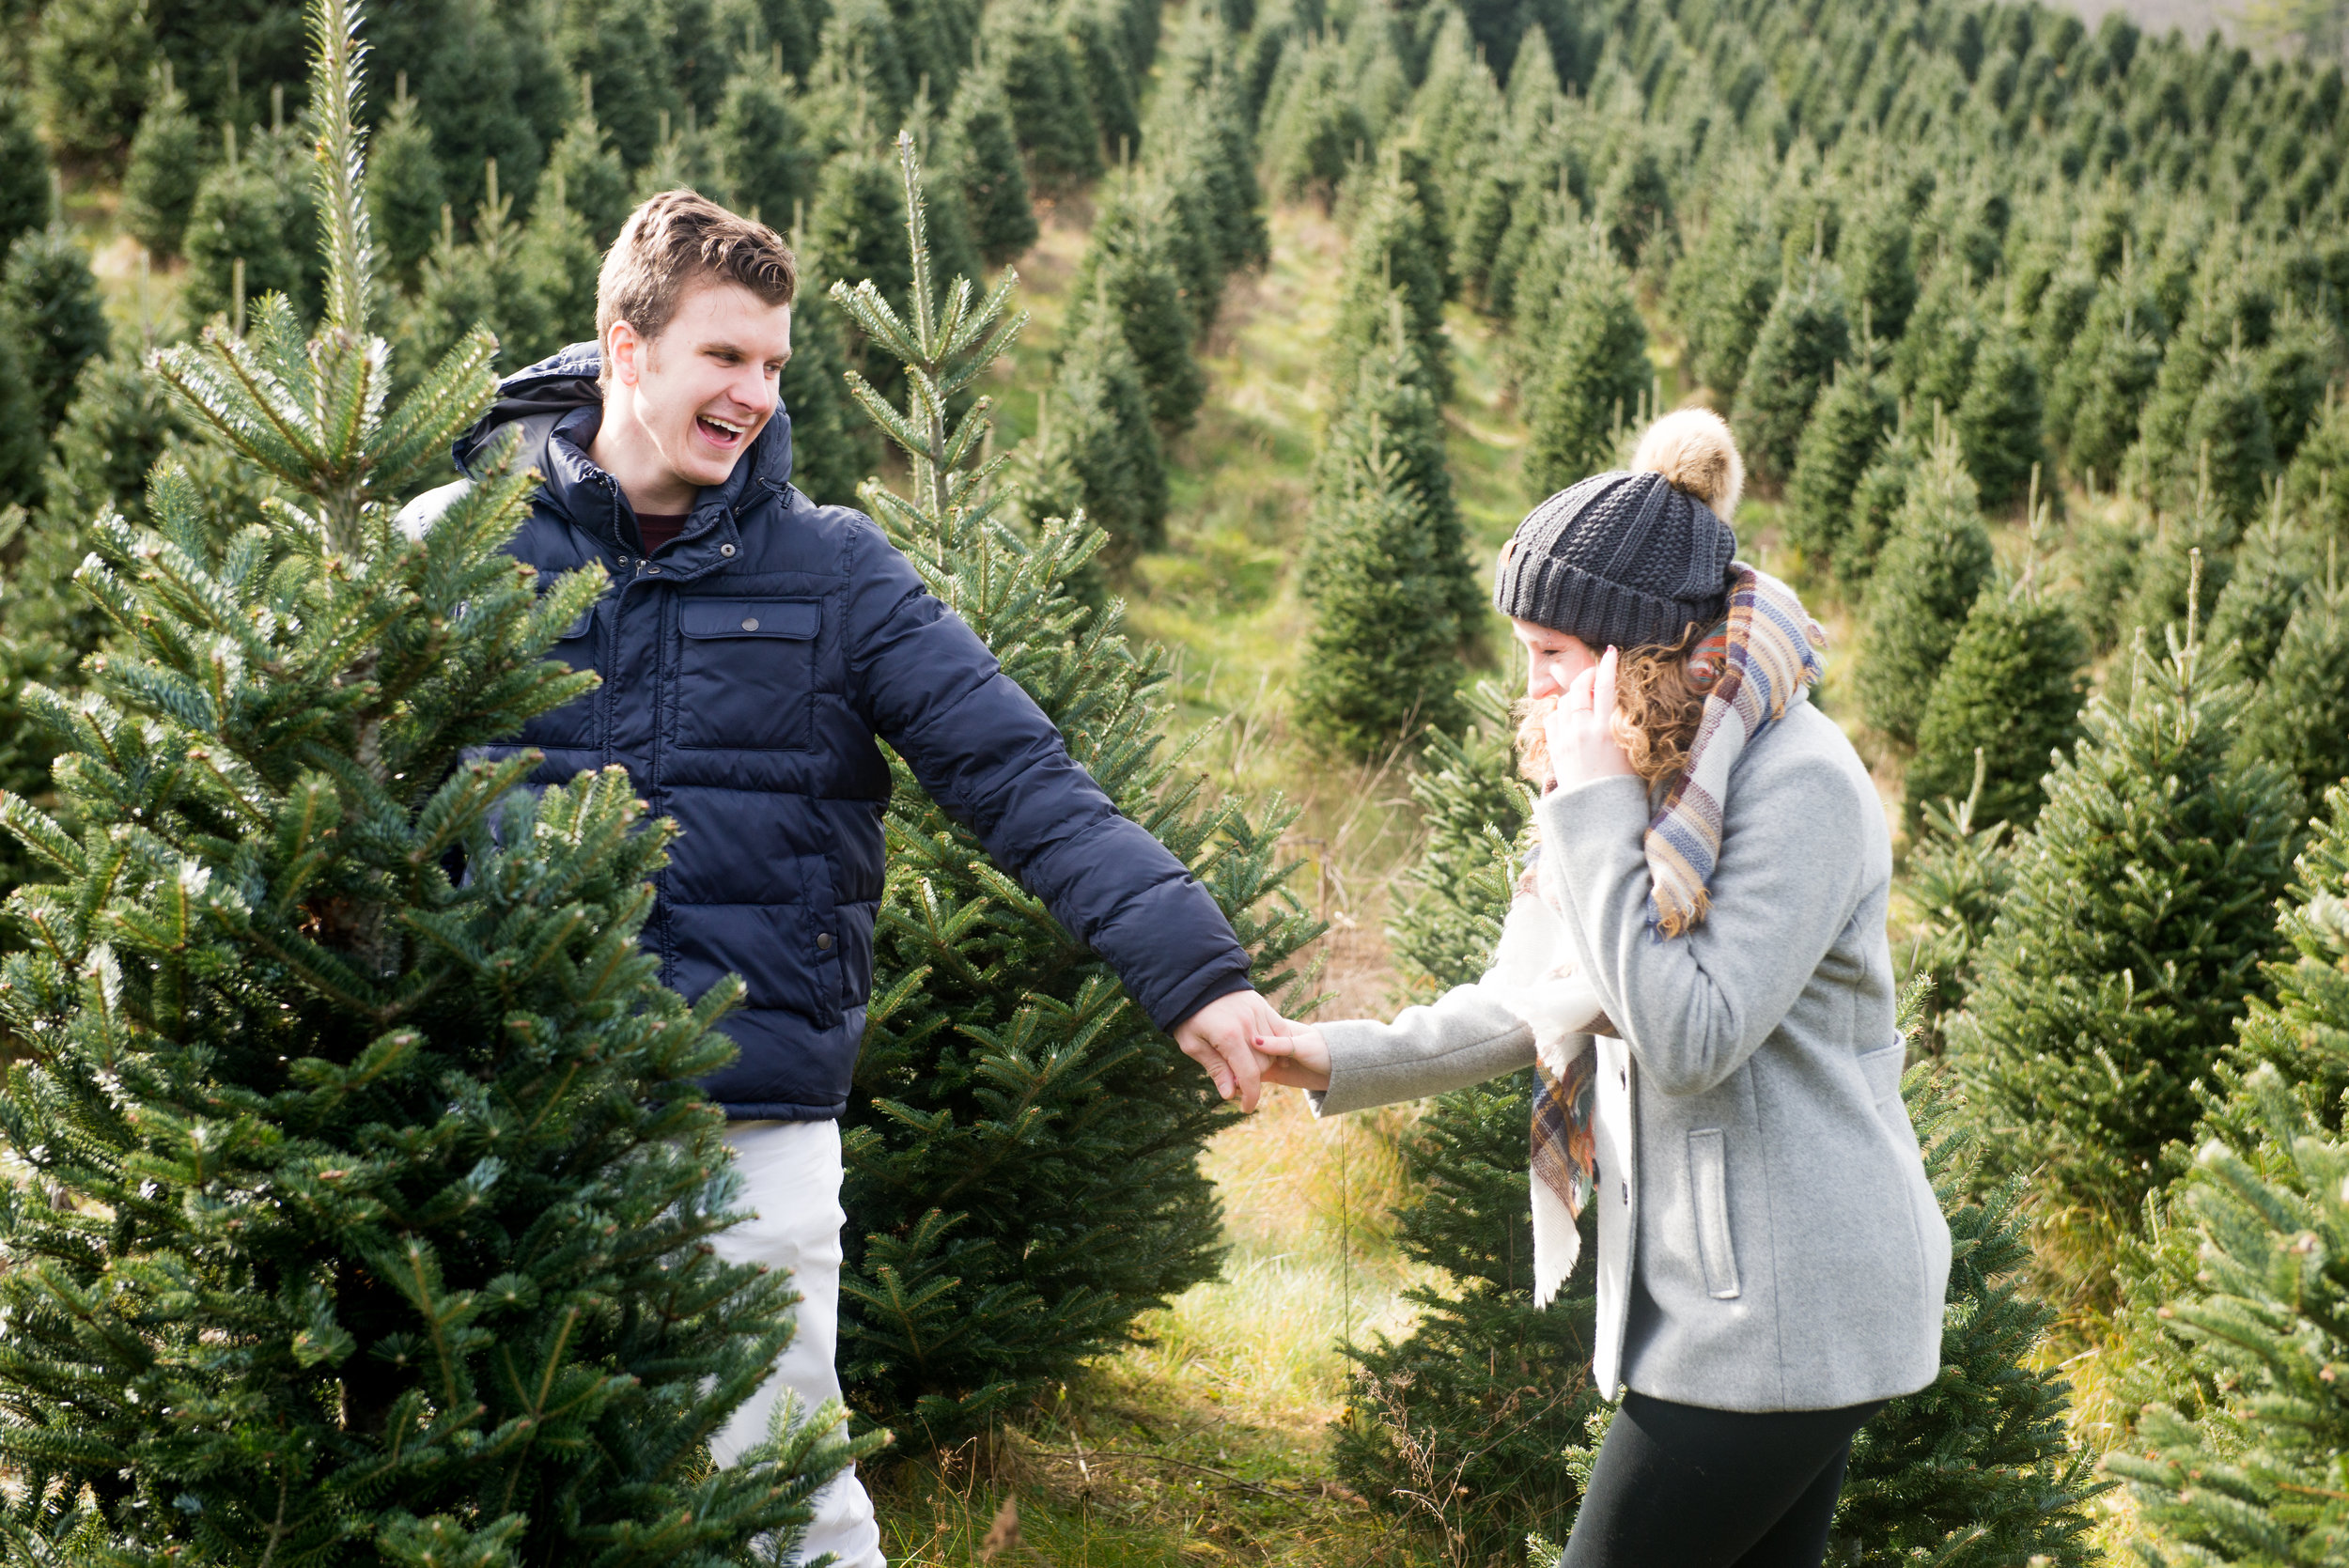 Christmas Tree Farm Mini Sessions are here! -